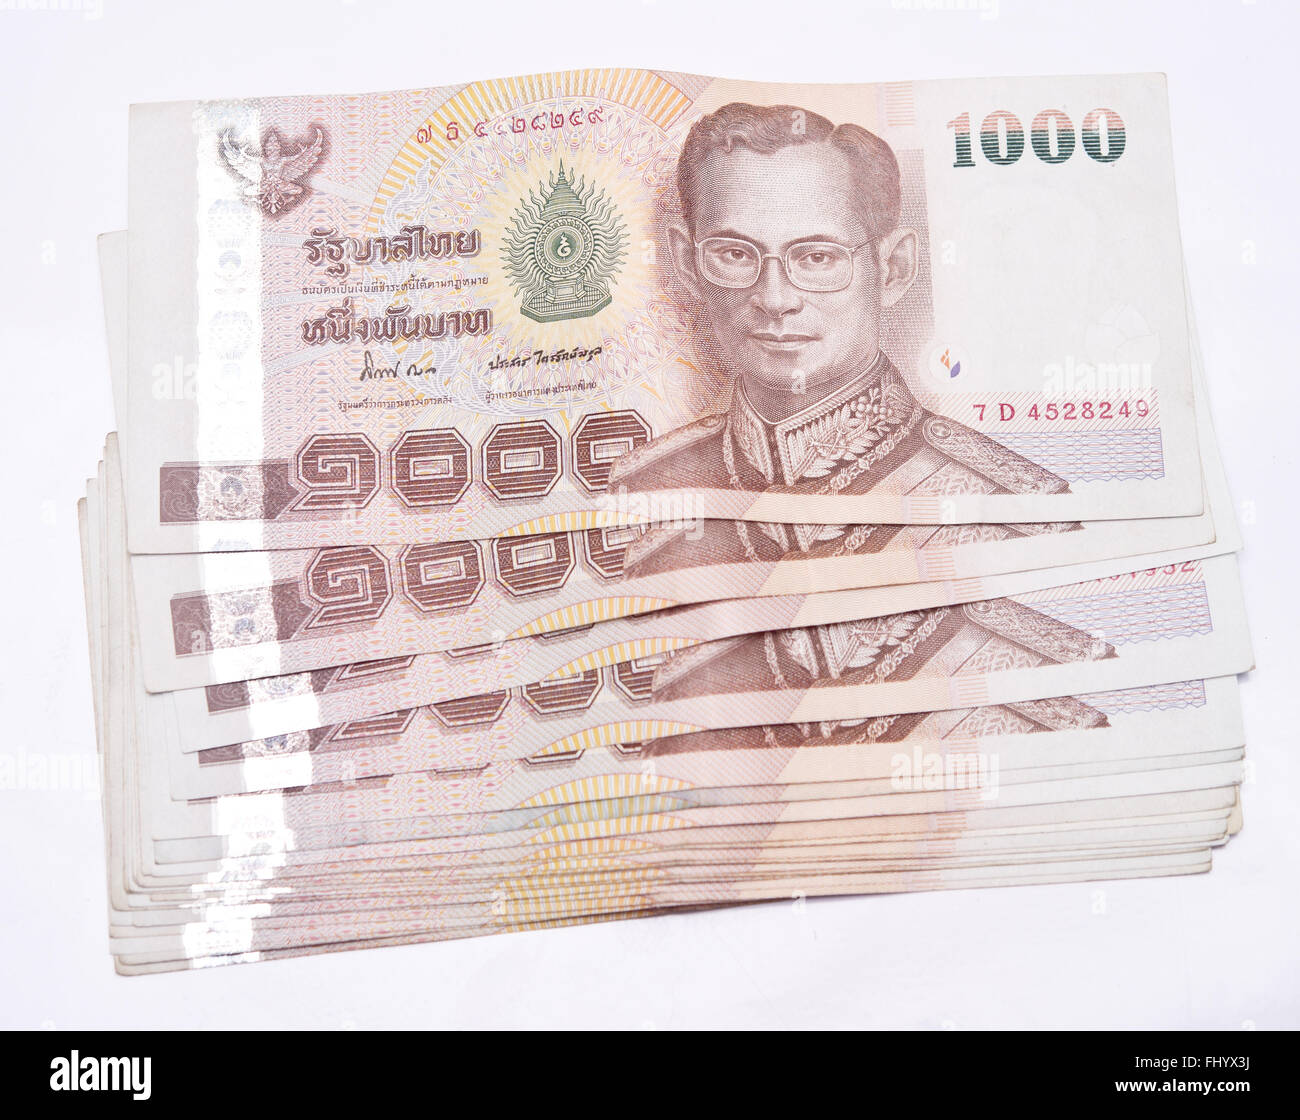 close-up-of-thai-banknotes-1000-baht-FHY